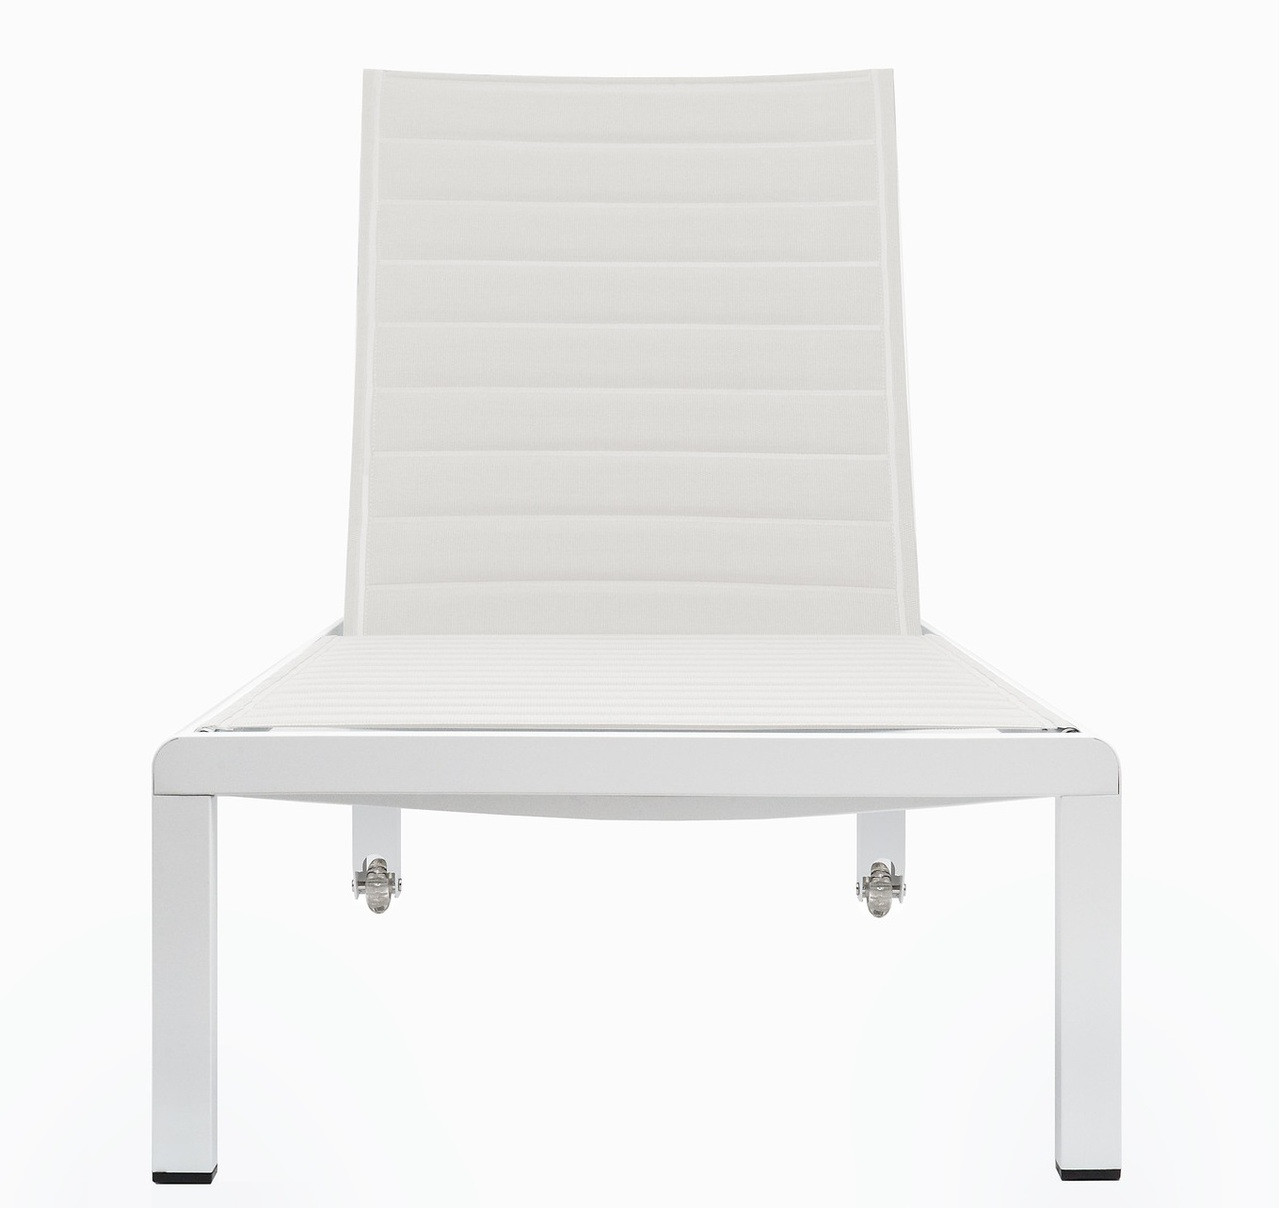 Modern outdoor chaise -  Ribbed White Modern Outdoor Chaise Lounge